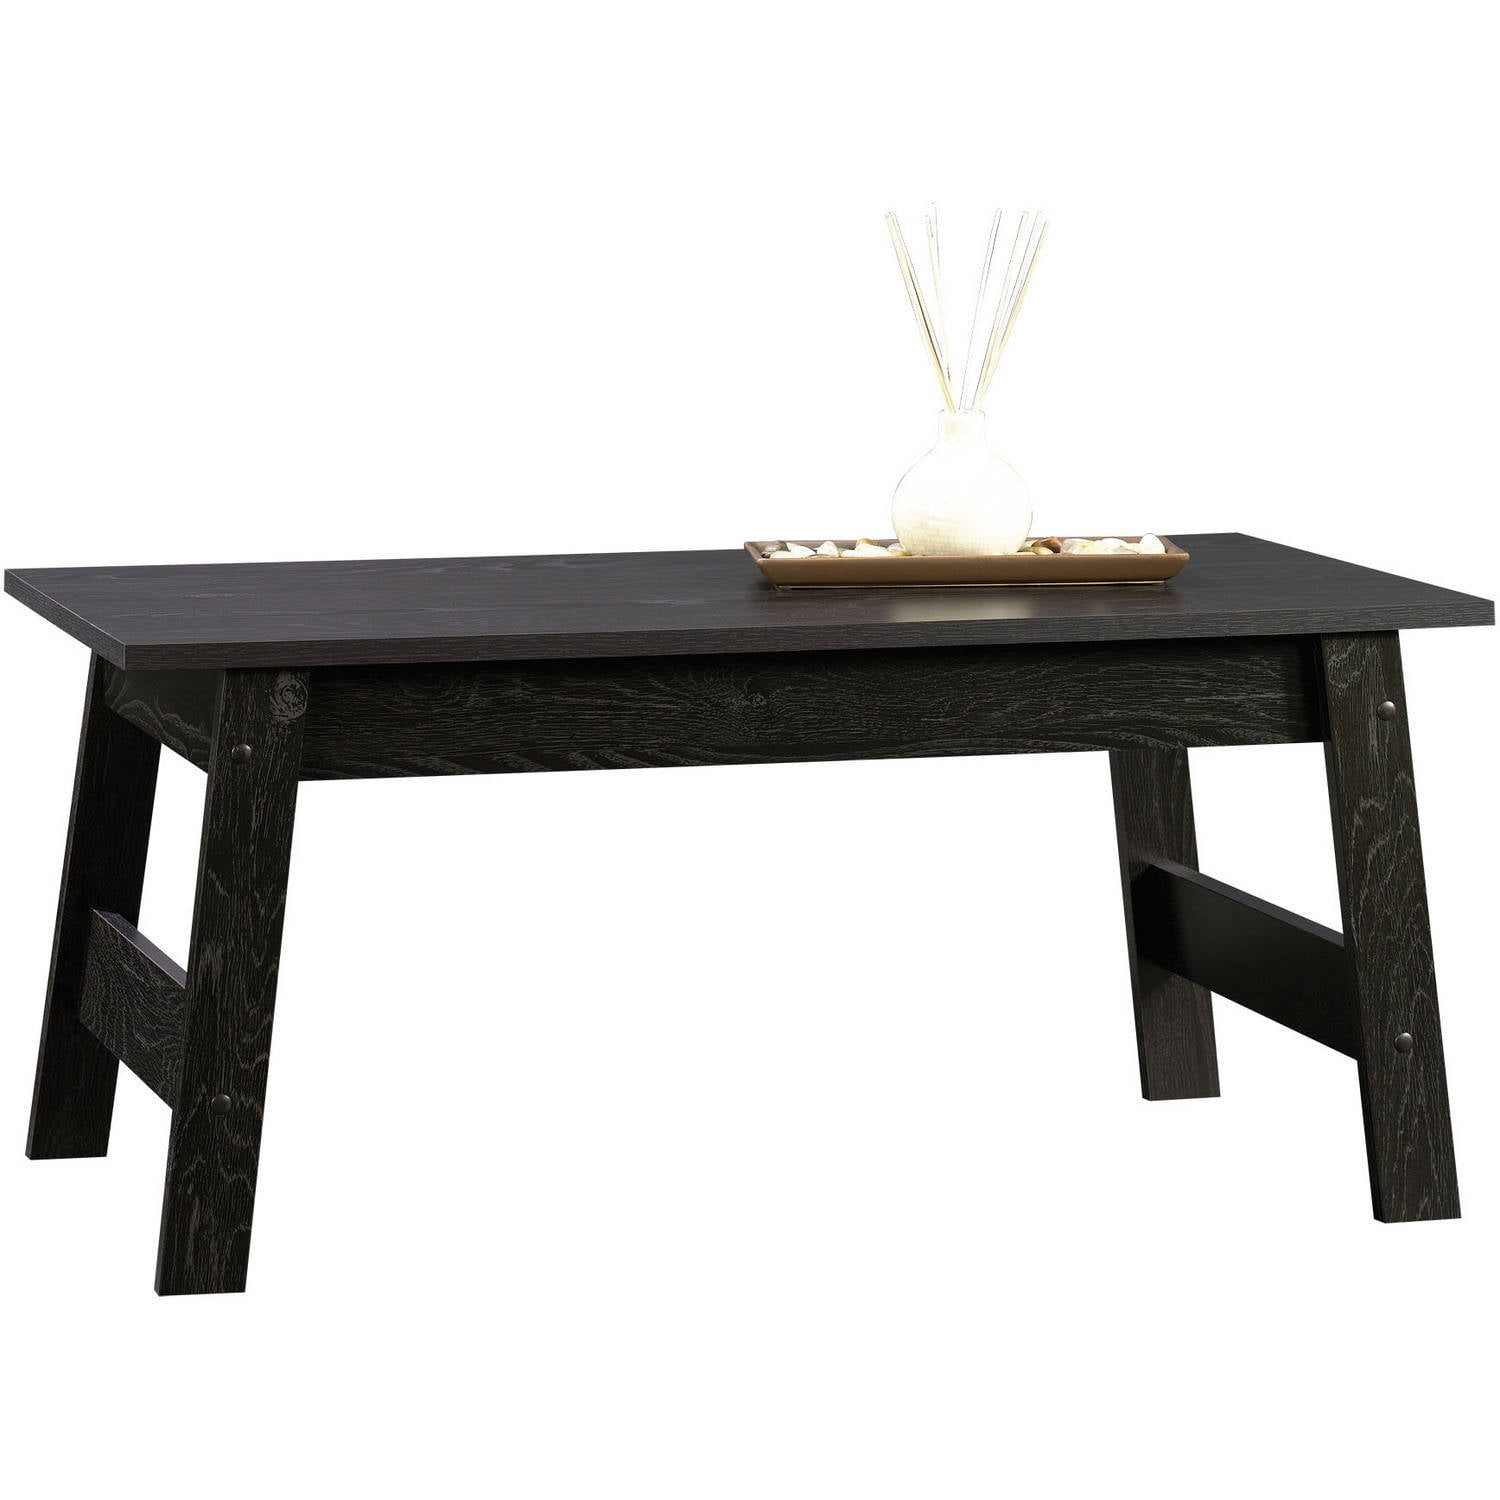 - Sauder Beginnings Collection Coffee Table, Black - Walmart.com